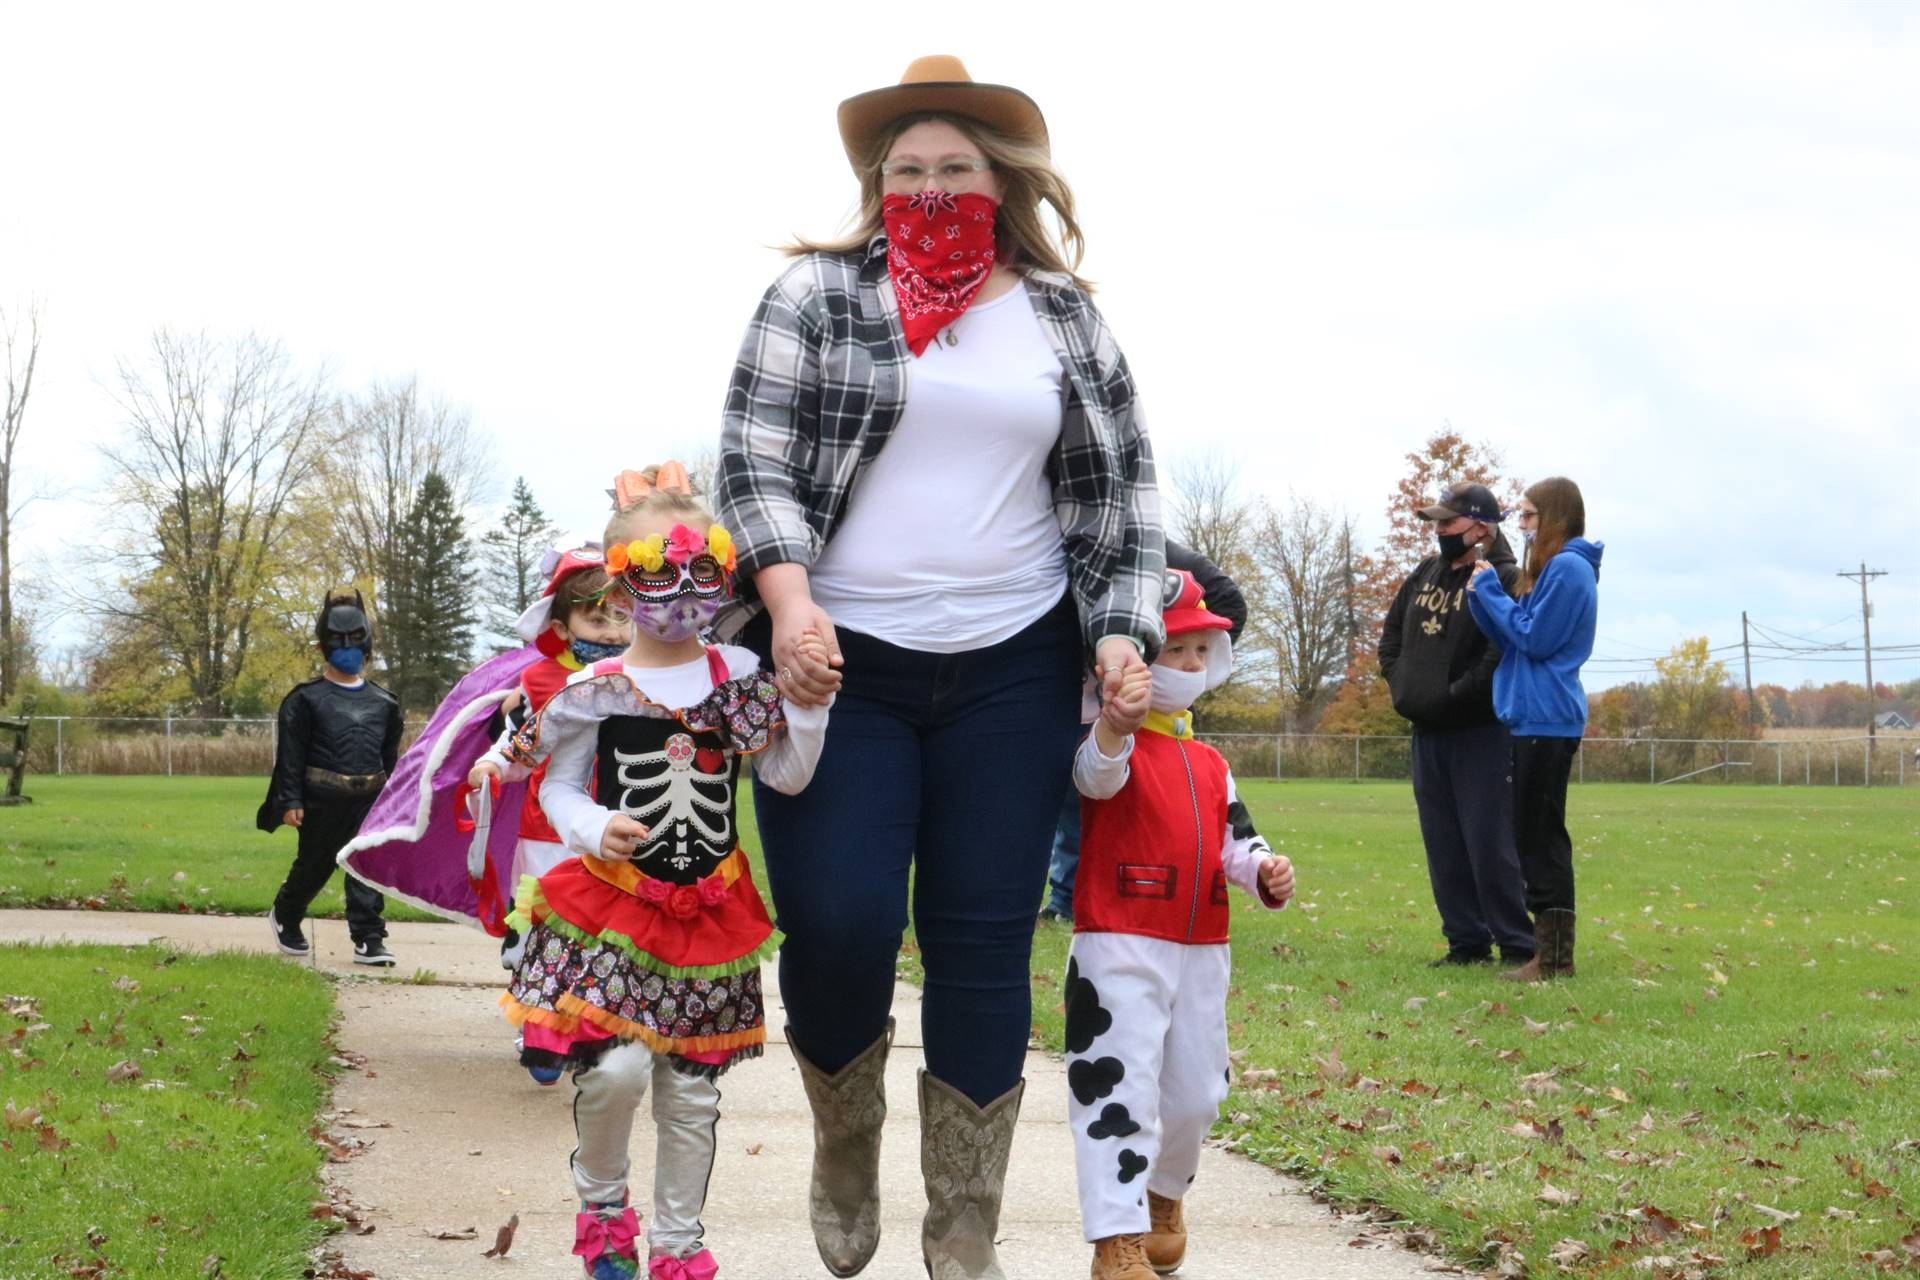 lady dressed as cowgirl with 2 kids